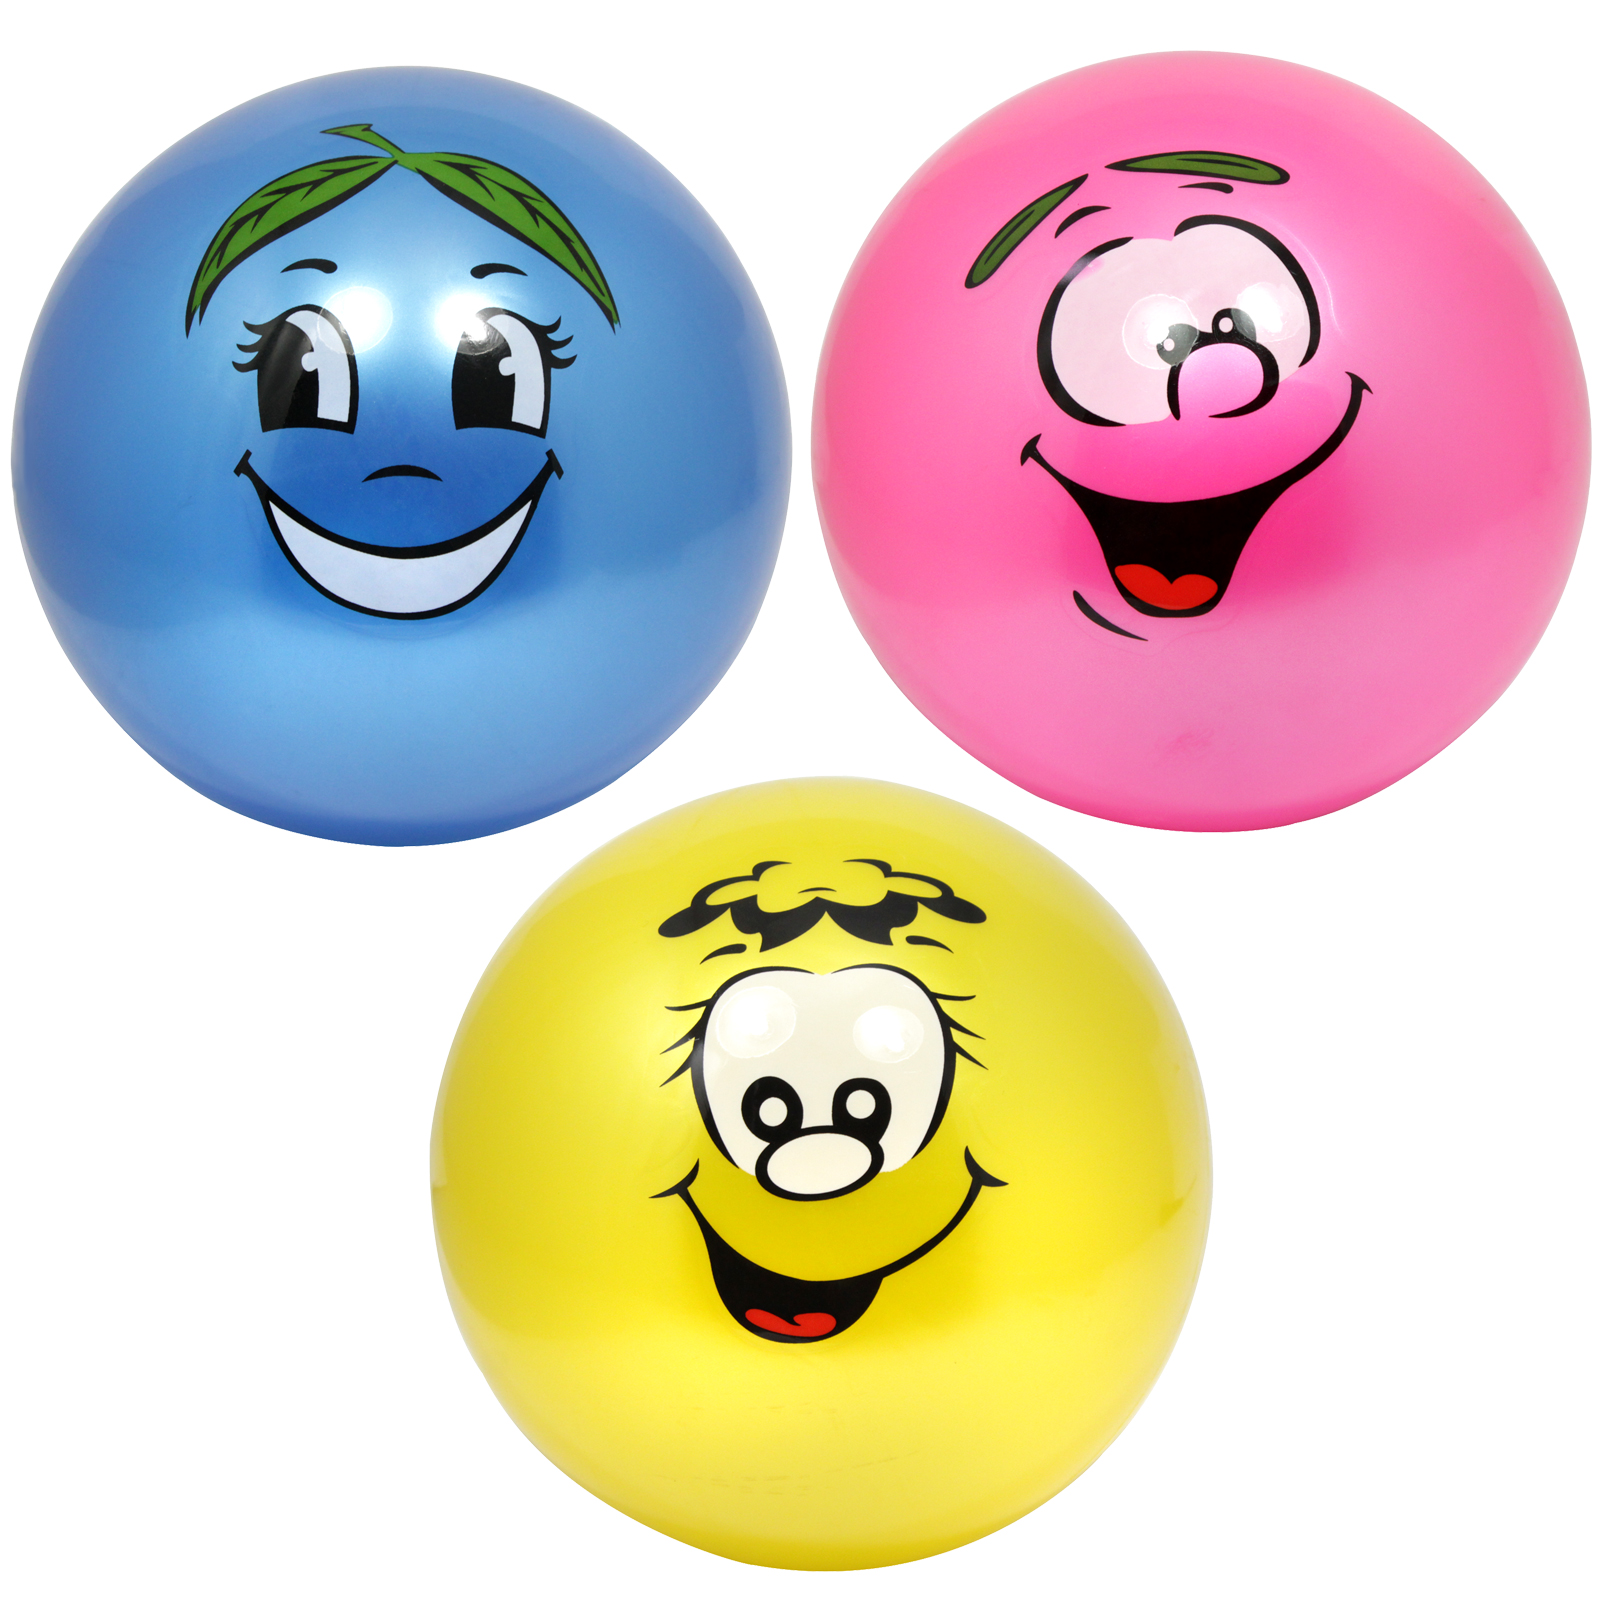 FOOTBALL - FRUIT SCENTED FACE 25CM NOT INFLATED